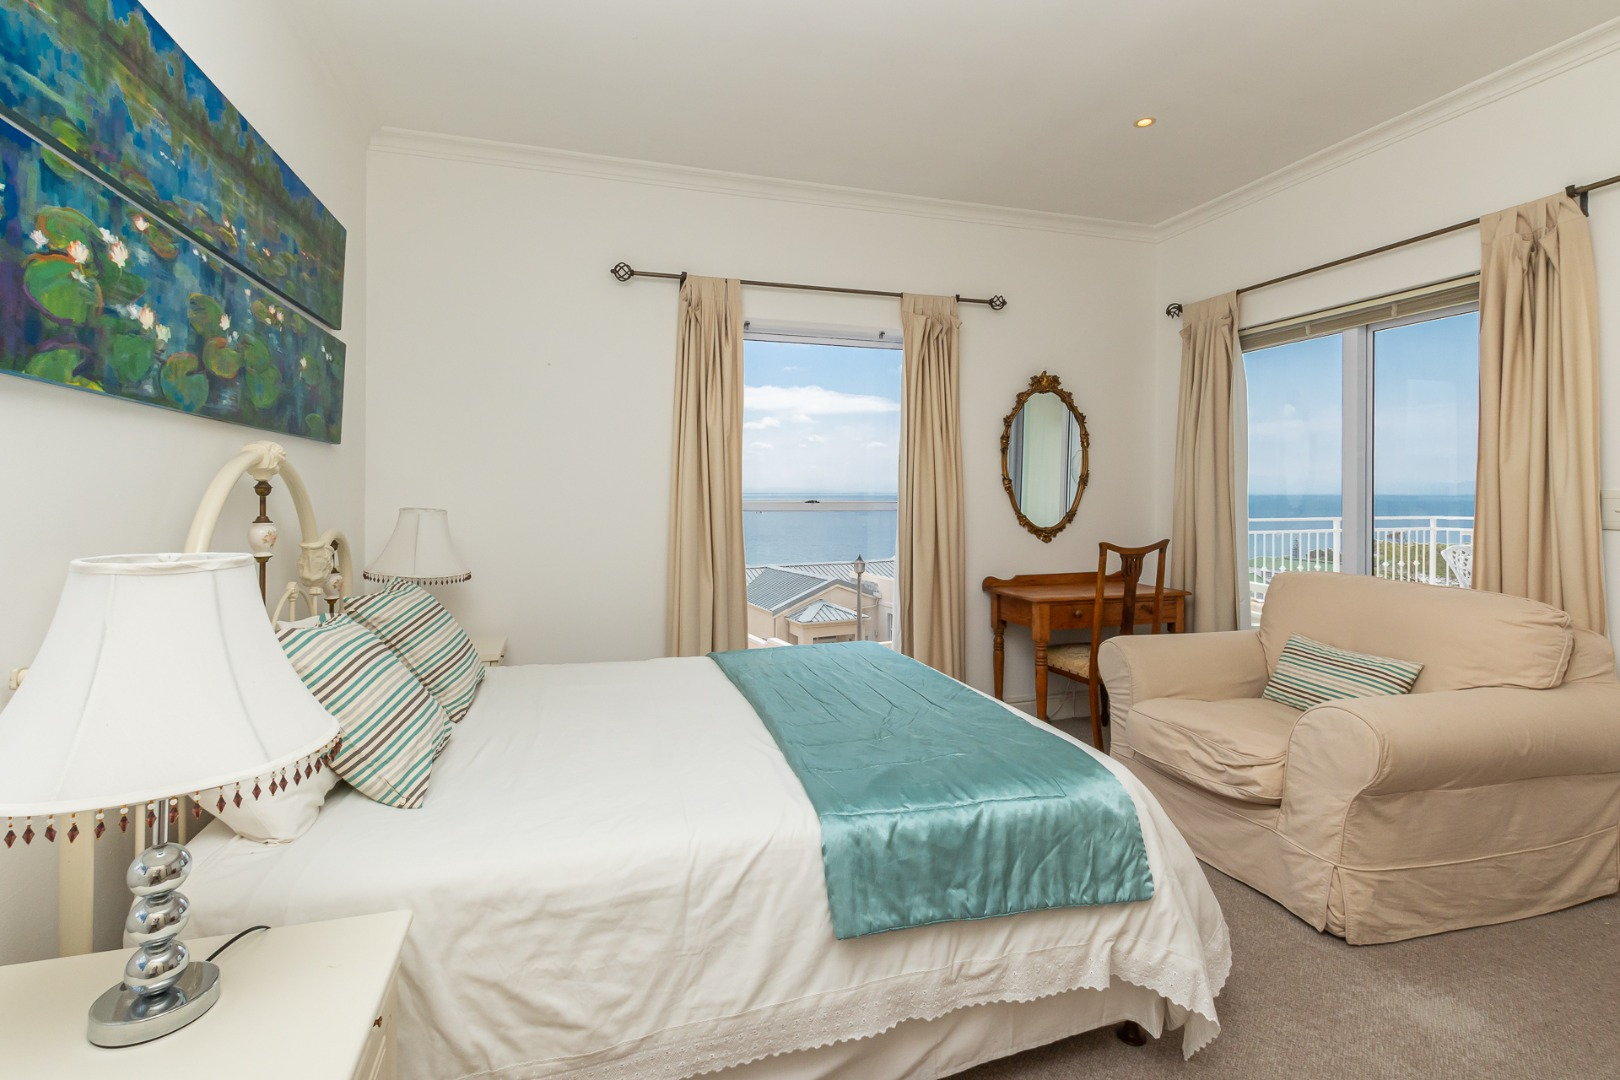 4 Bedroom House For Sale in Simons Town Central